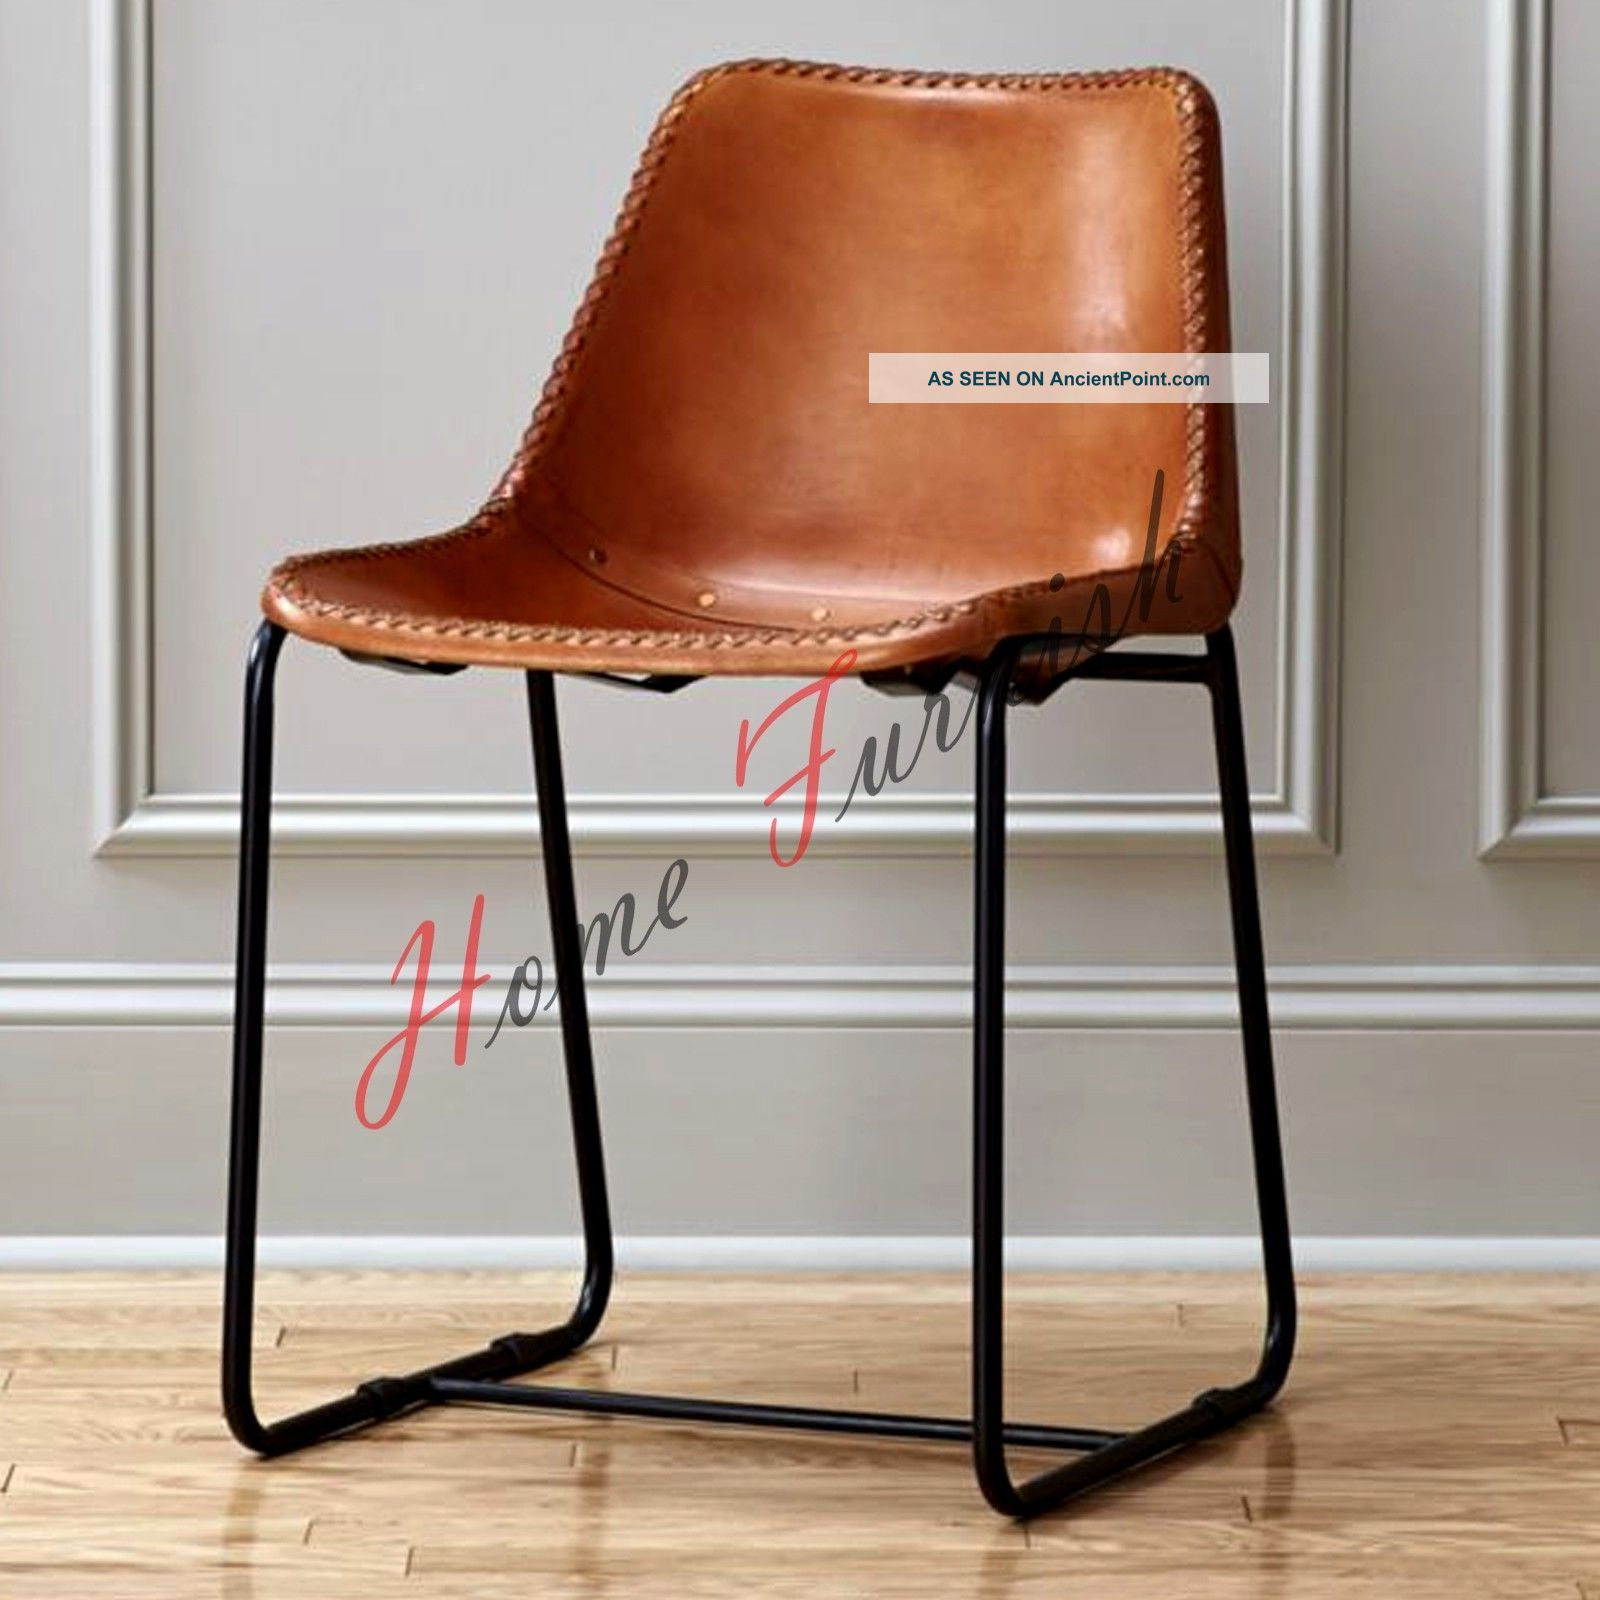 Brown Leather Dining Chair Cafe Chair Restaurant Chairs Retro Style Chair Post-1950 photo